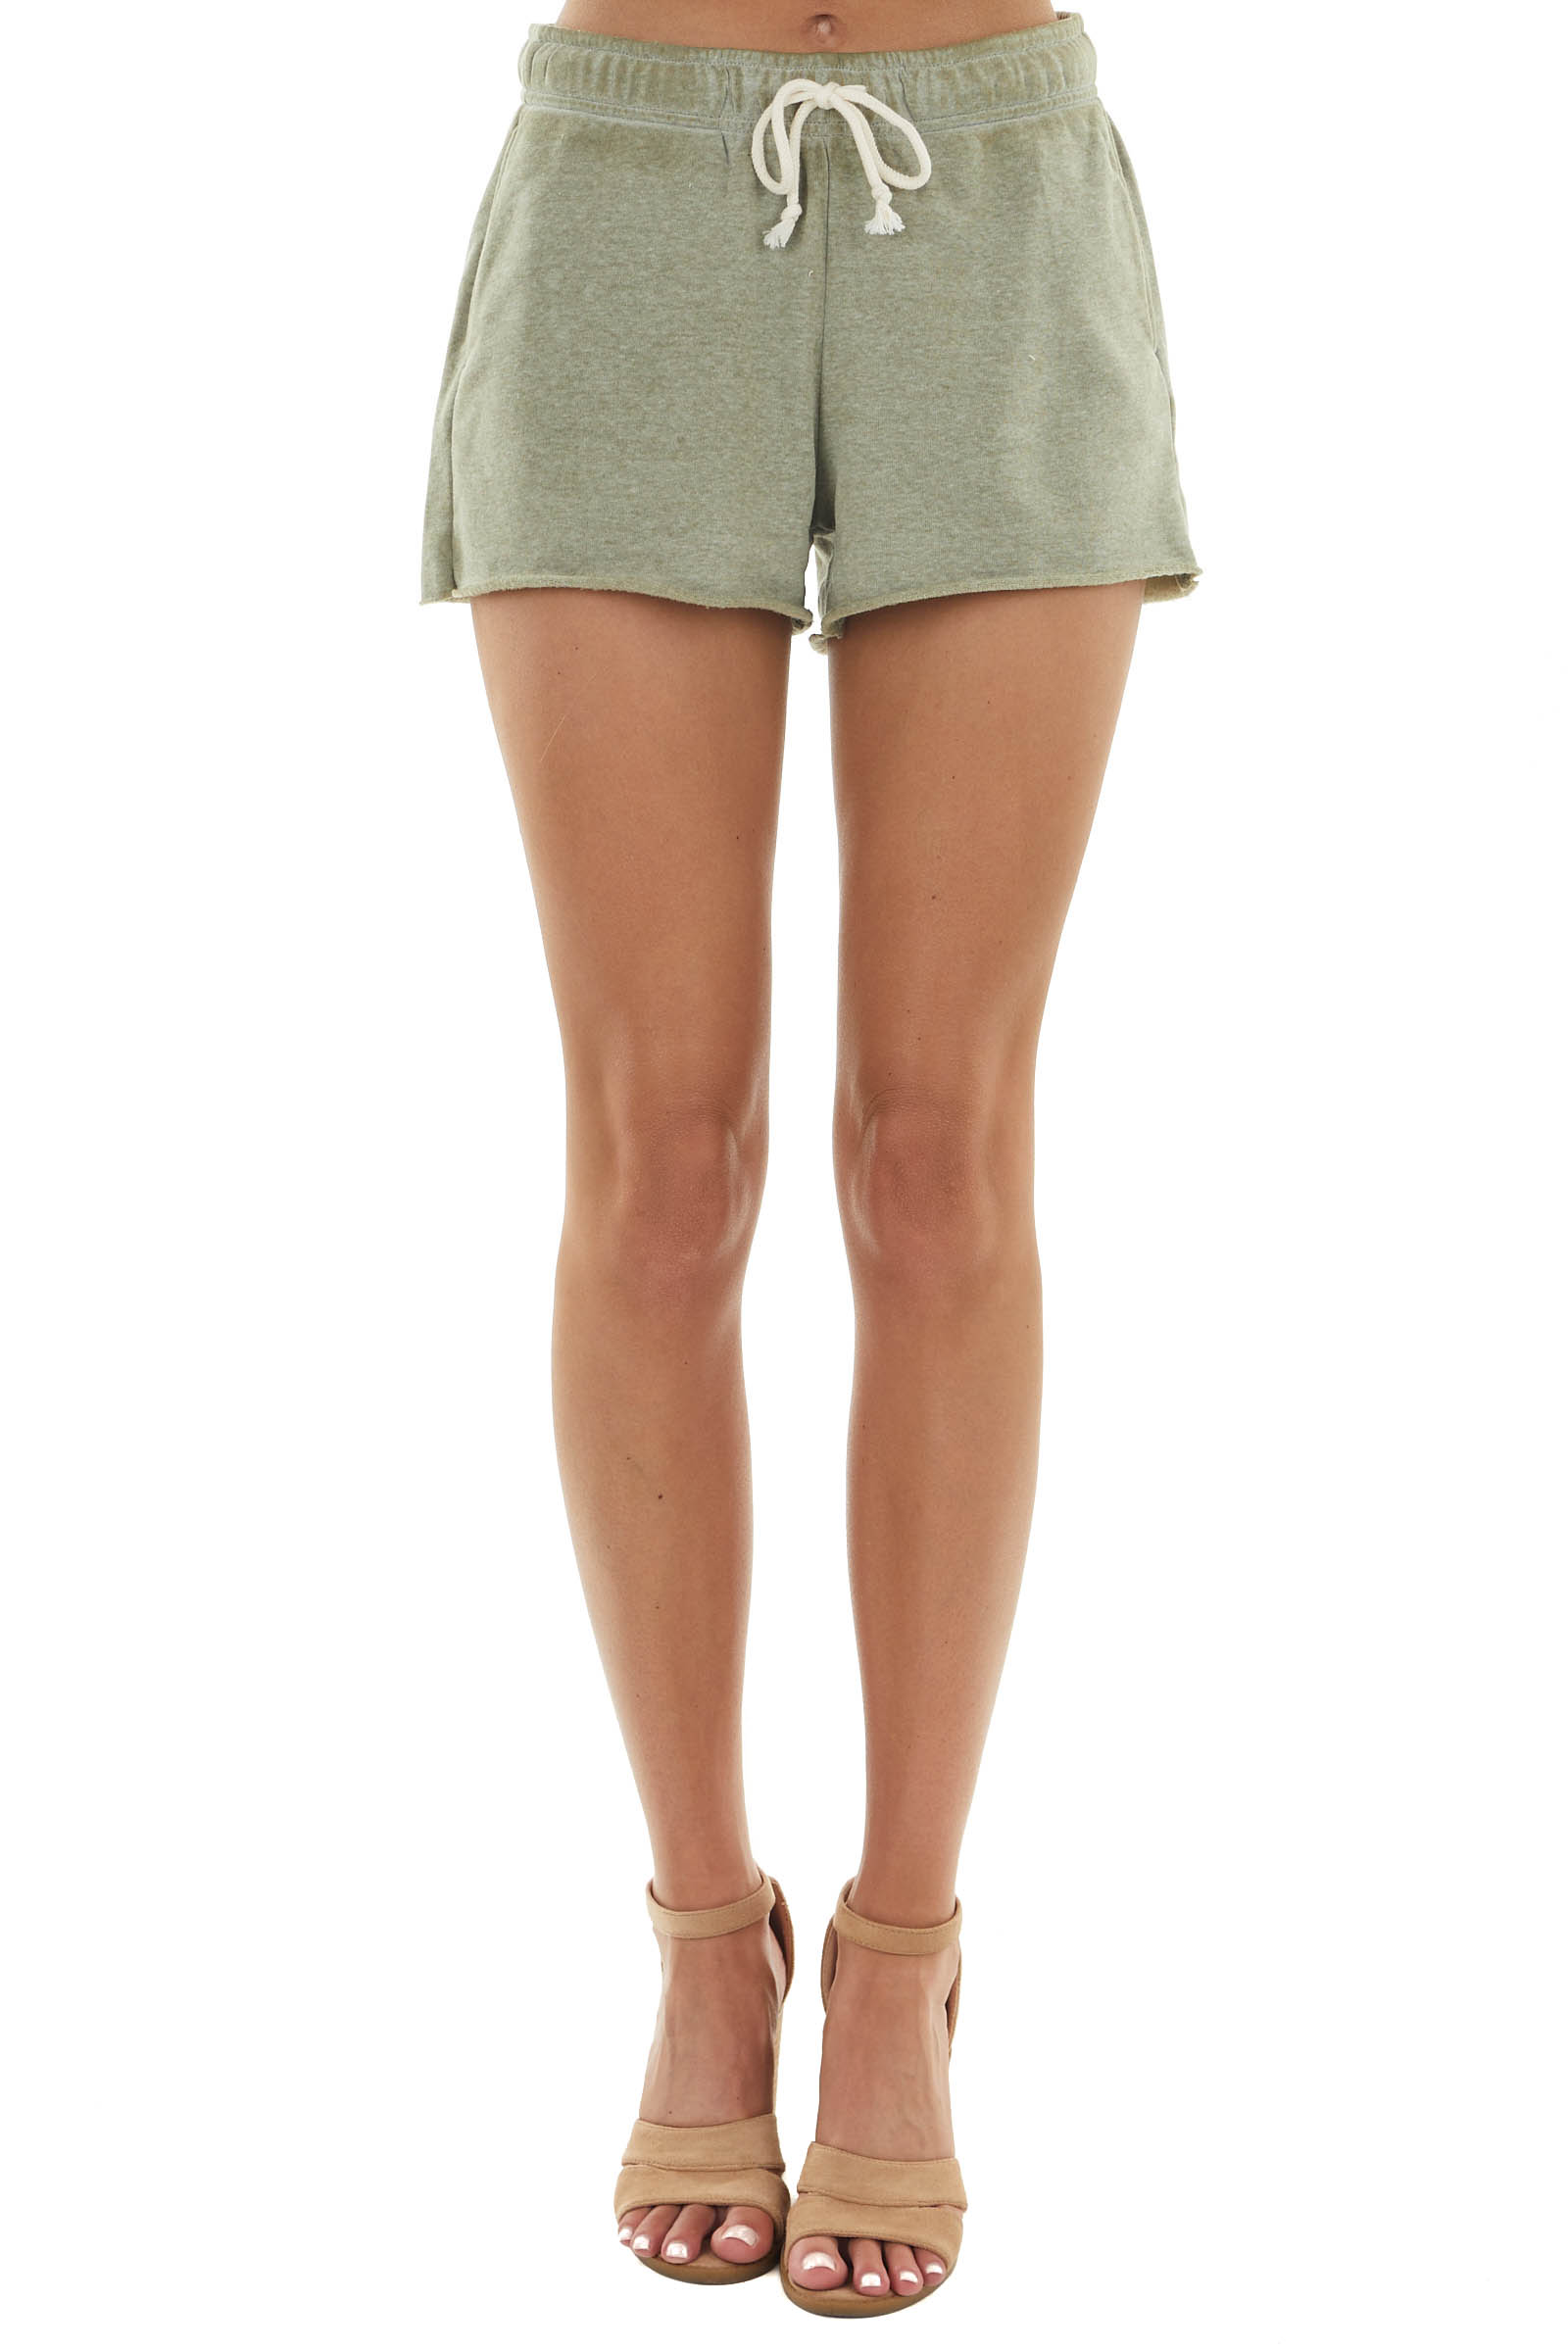 Melange Olive Soft Knit Shorts with Functional Waist Tie